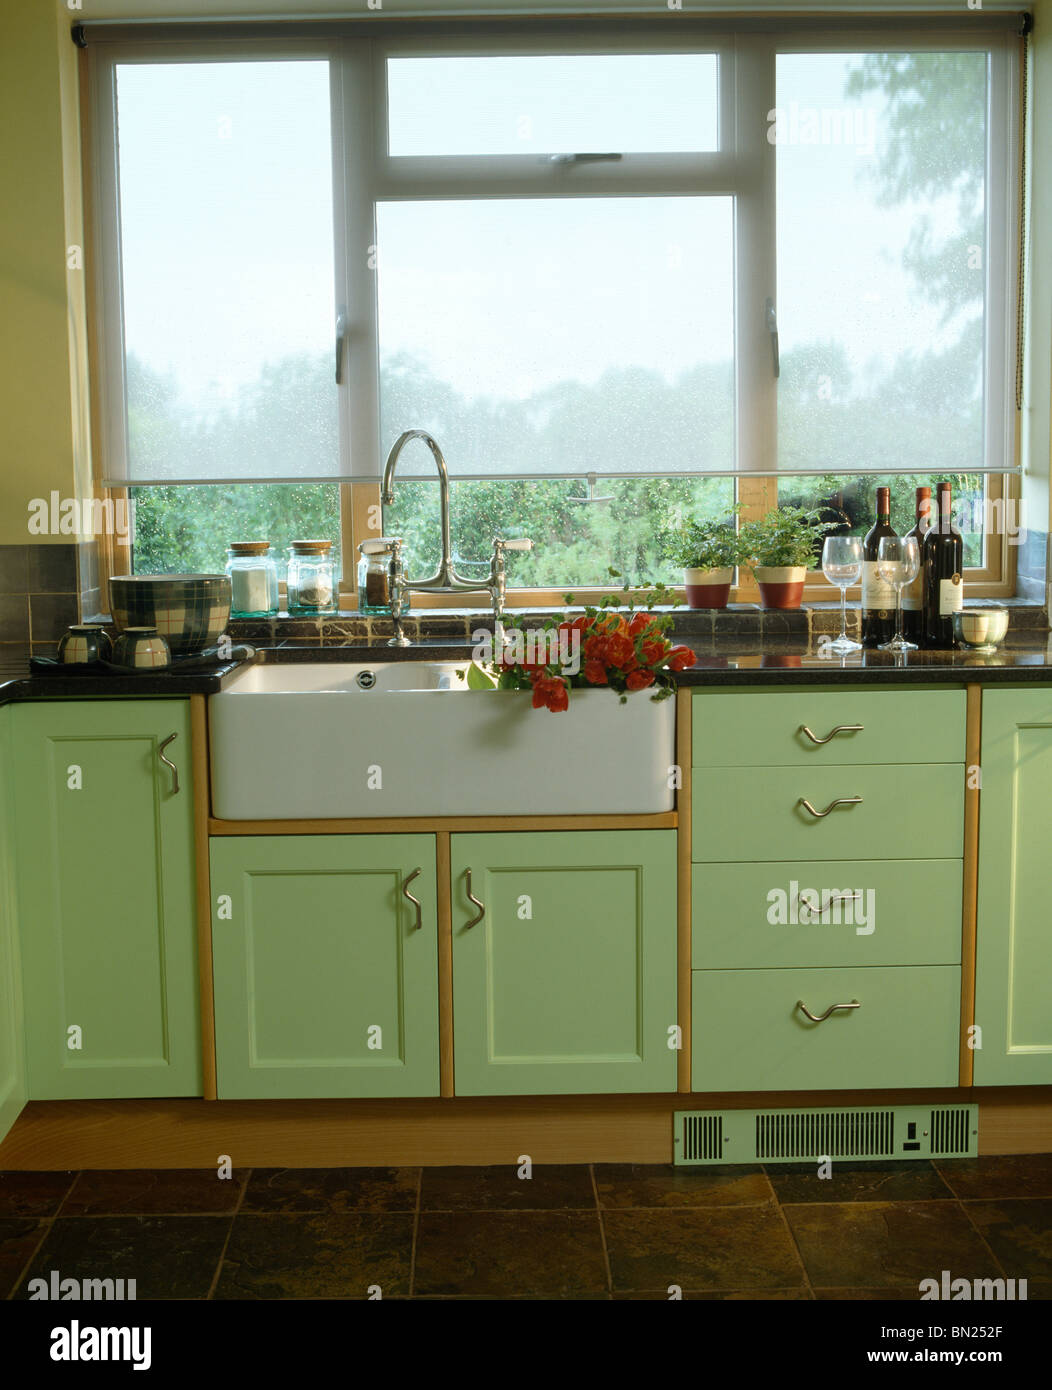 Green Country Homes Kitchens